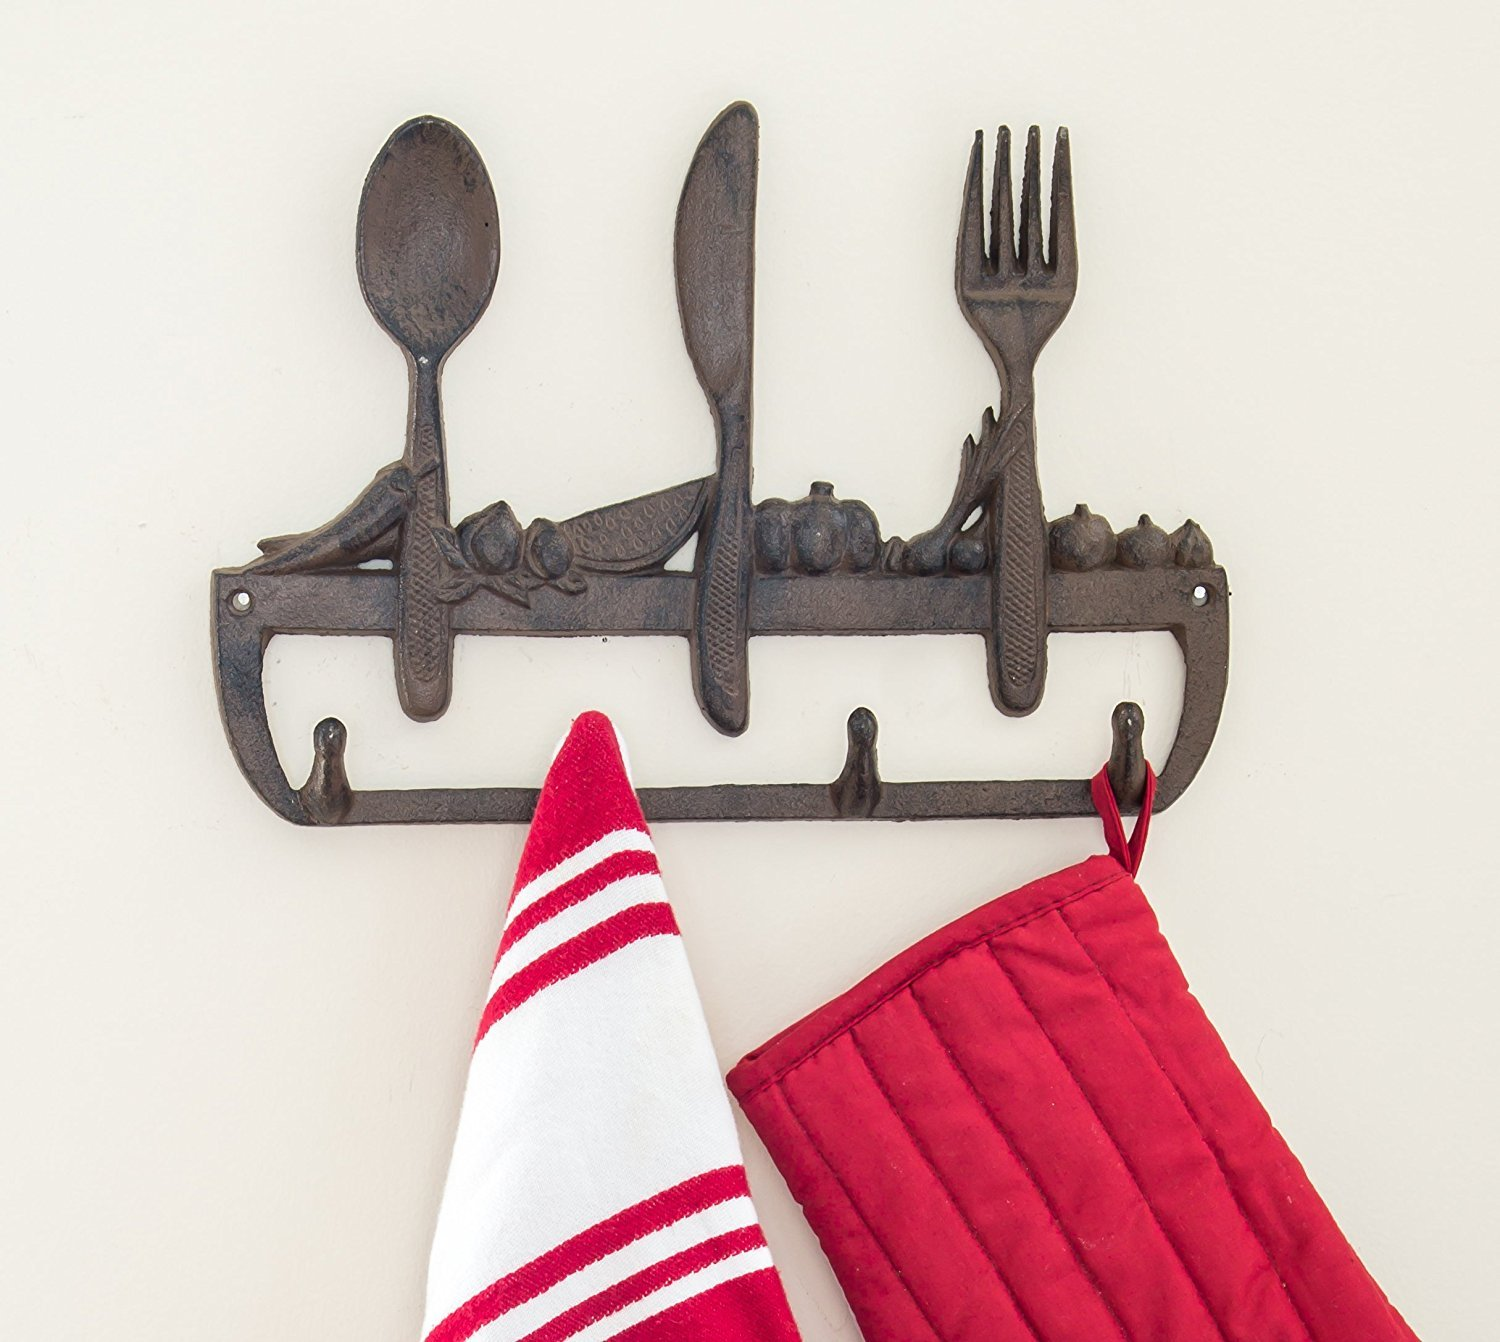 "Cast Iron Wall Hanger For Kitchen - Old Fashioned Spoon, Knife and Fork with 3 Hooks - Decorative Cast Iron Kitchen Storage Towel Rack -11.8 x 8"" With Screws And Anchors By Comfify - CA-1504-23-BR"